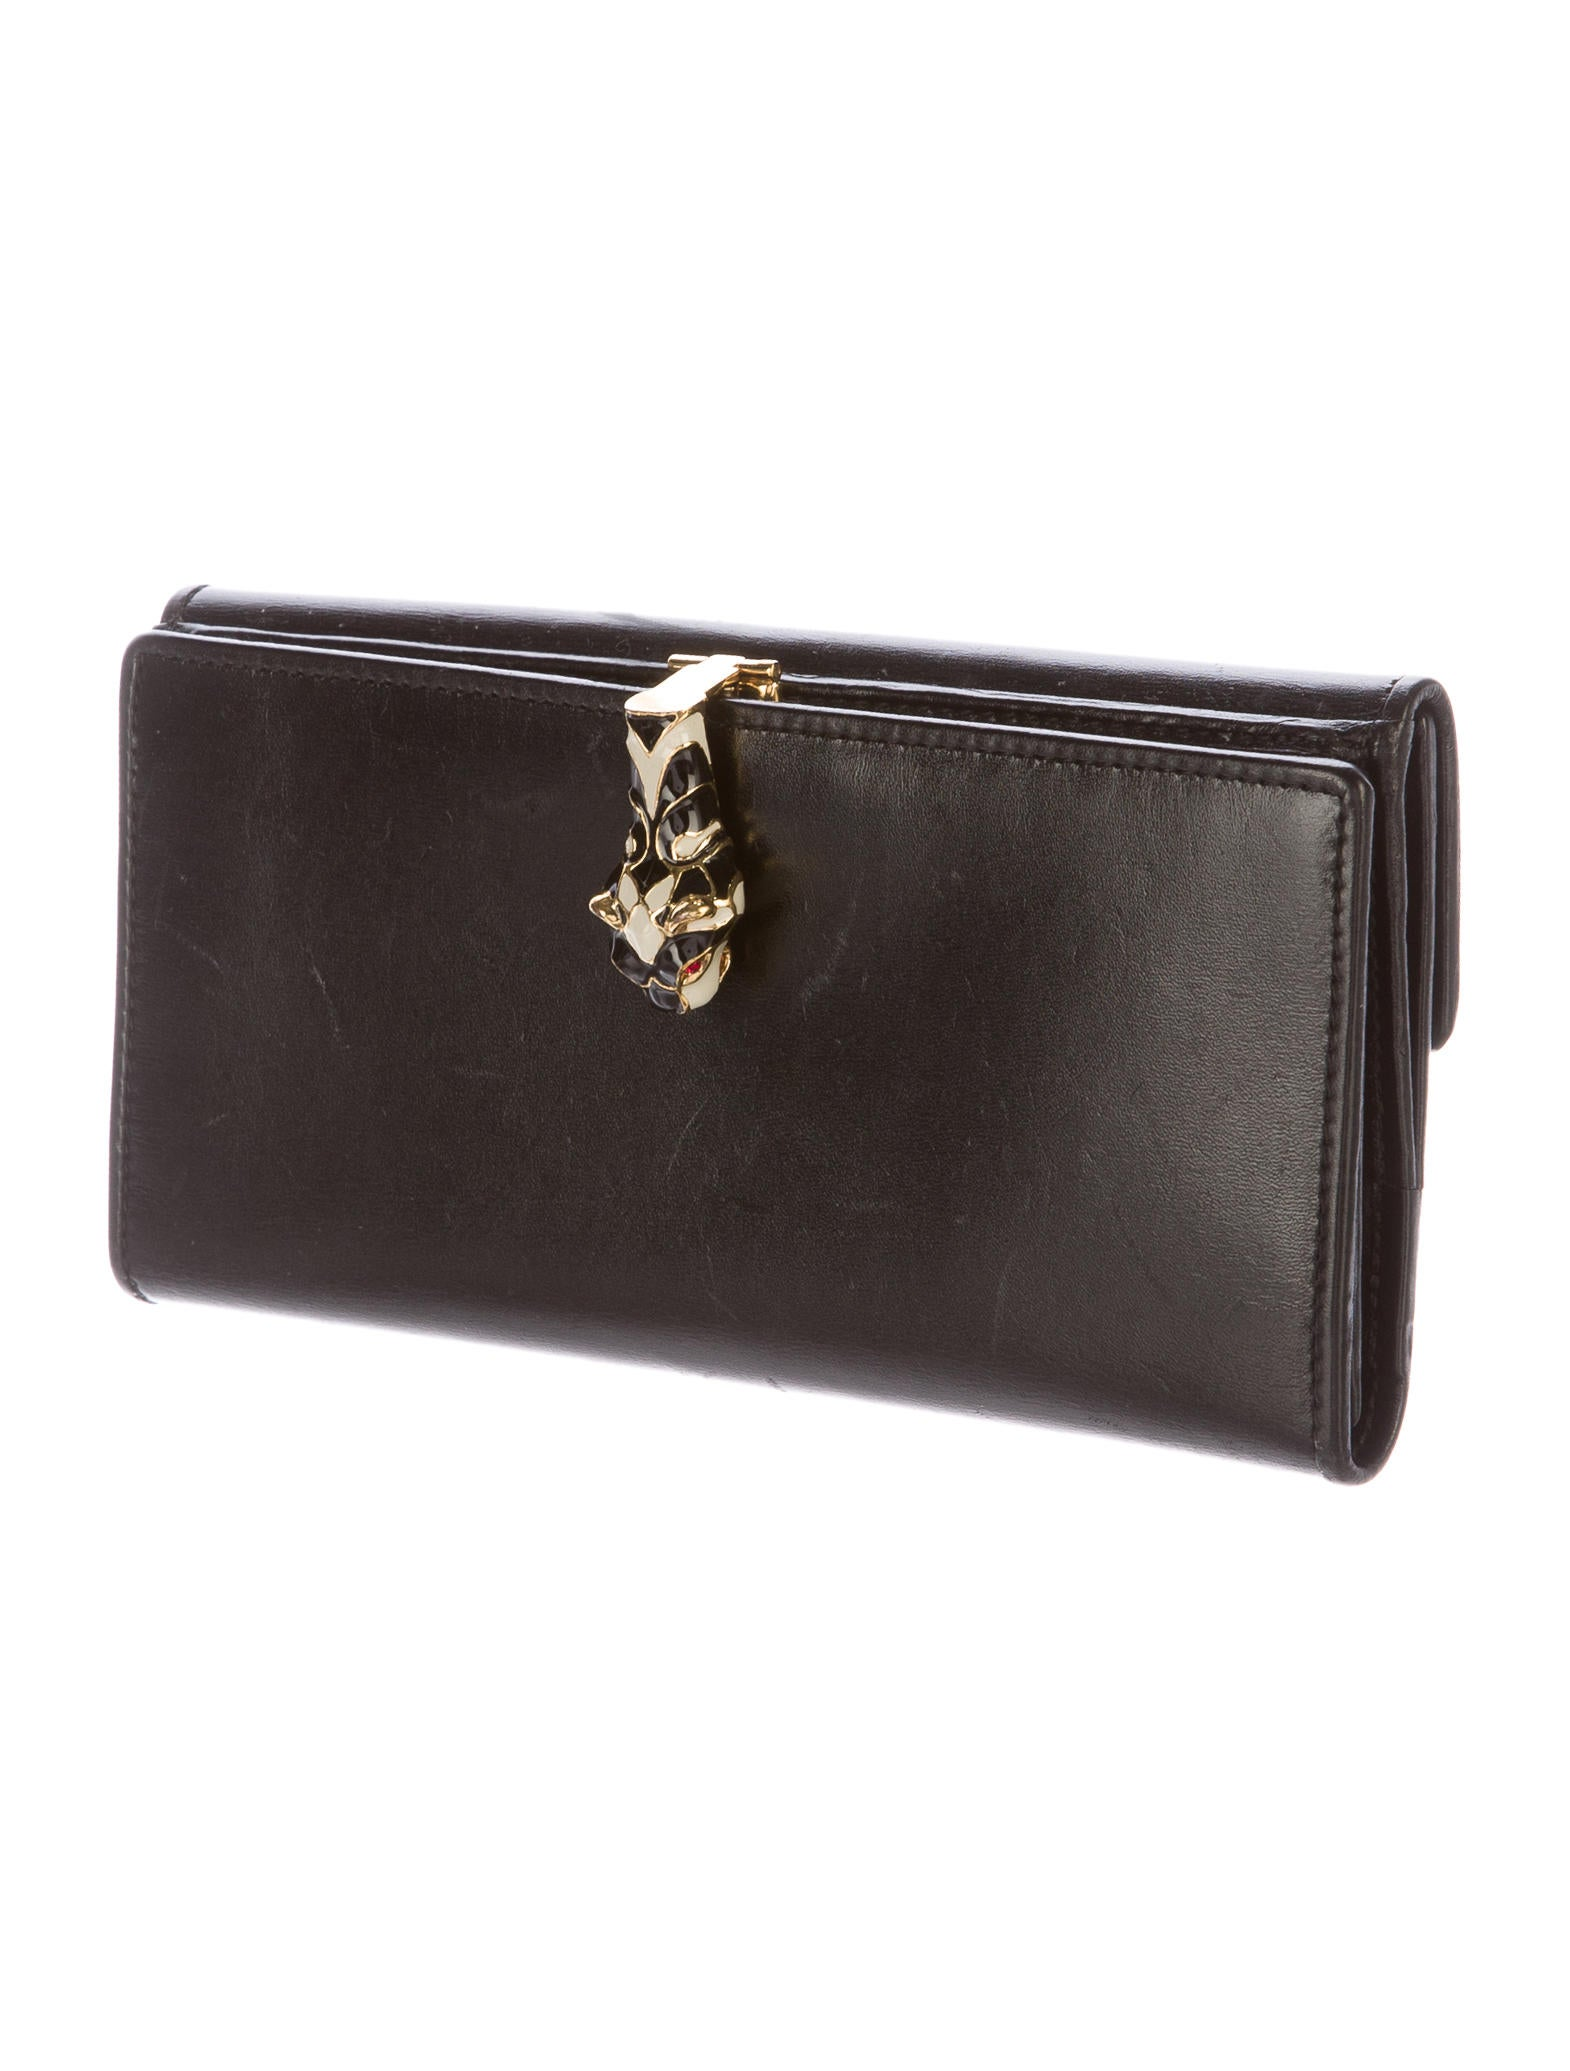 0805478a7343 Gucci Wallet Tiger Black | Stanford Center for Opportunity Policy in ...